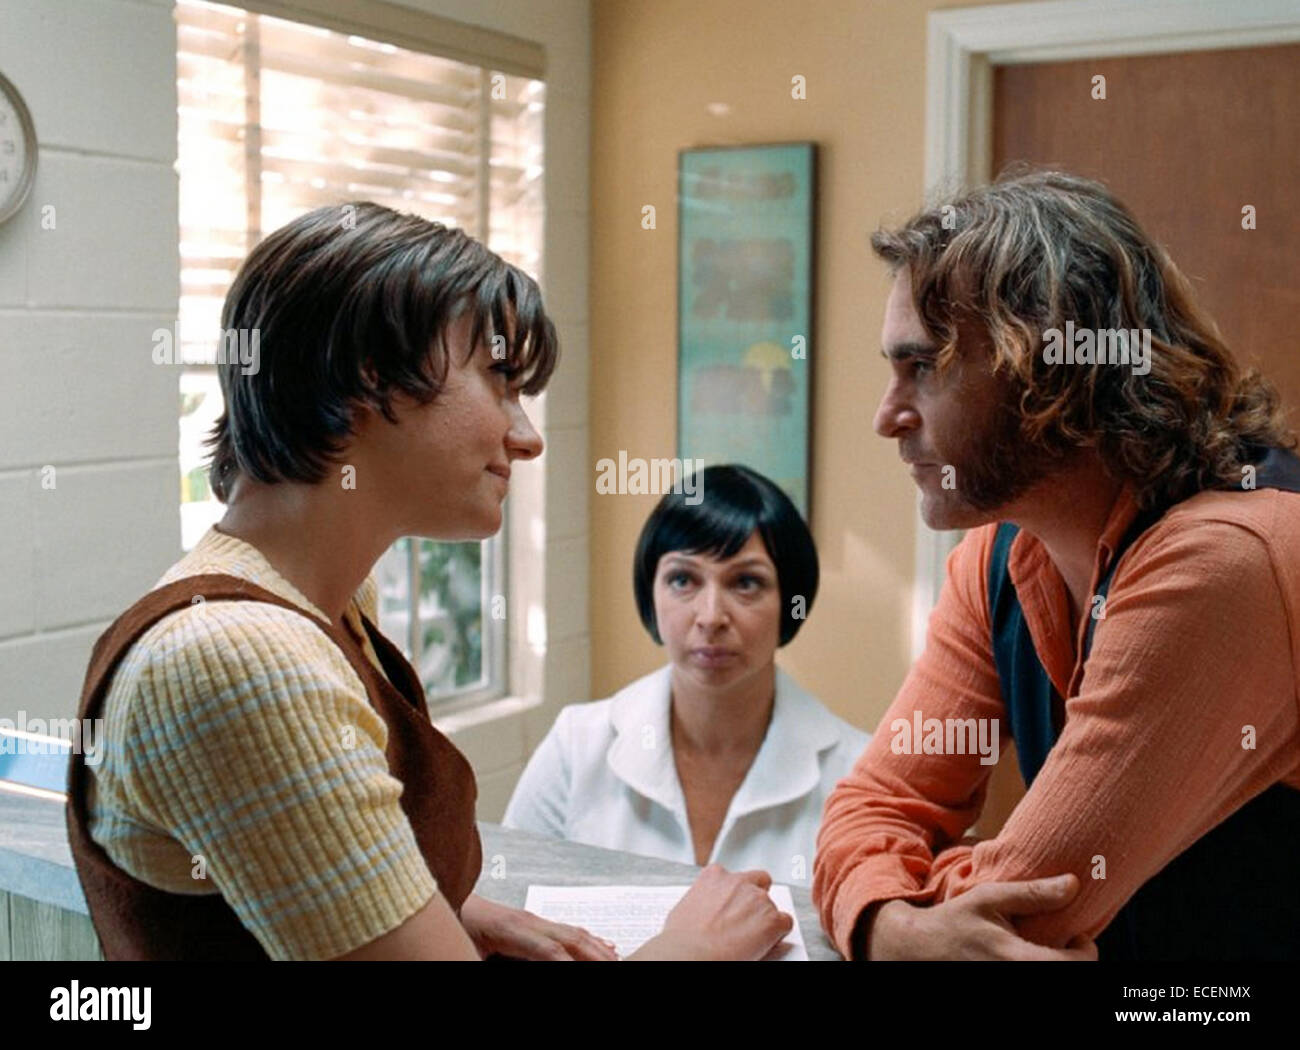 INHERENT VICE 2014 Warner Bros film with Maya Rudolph at left and Joaquin Phoenix - Stock Image